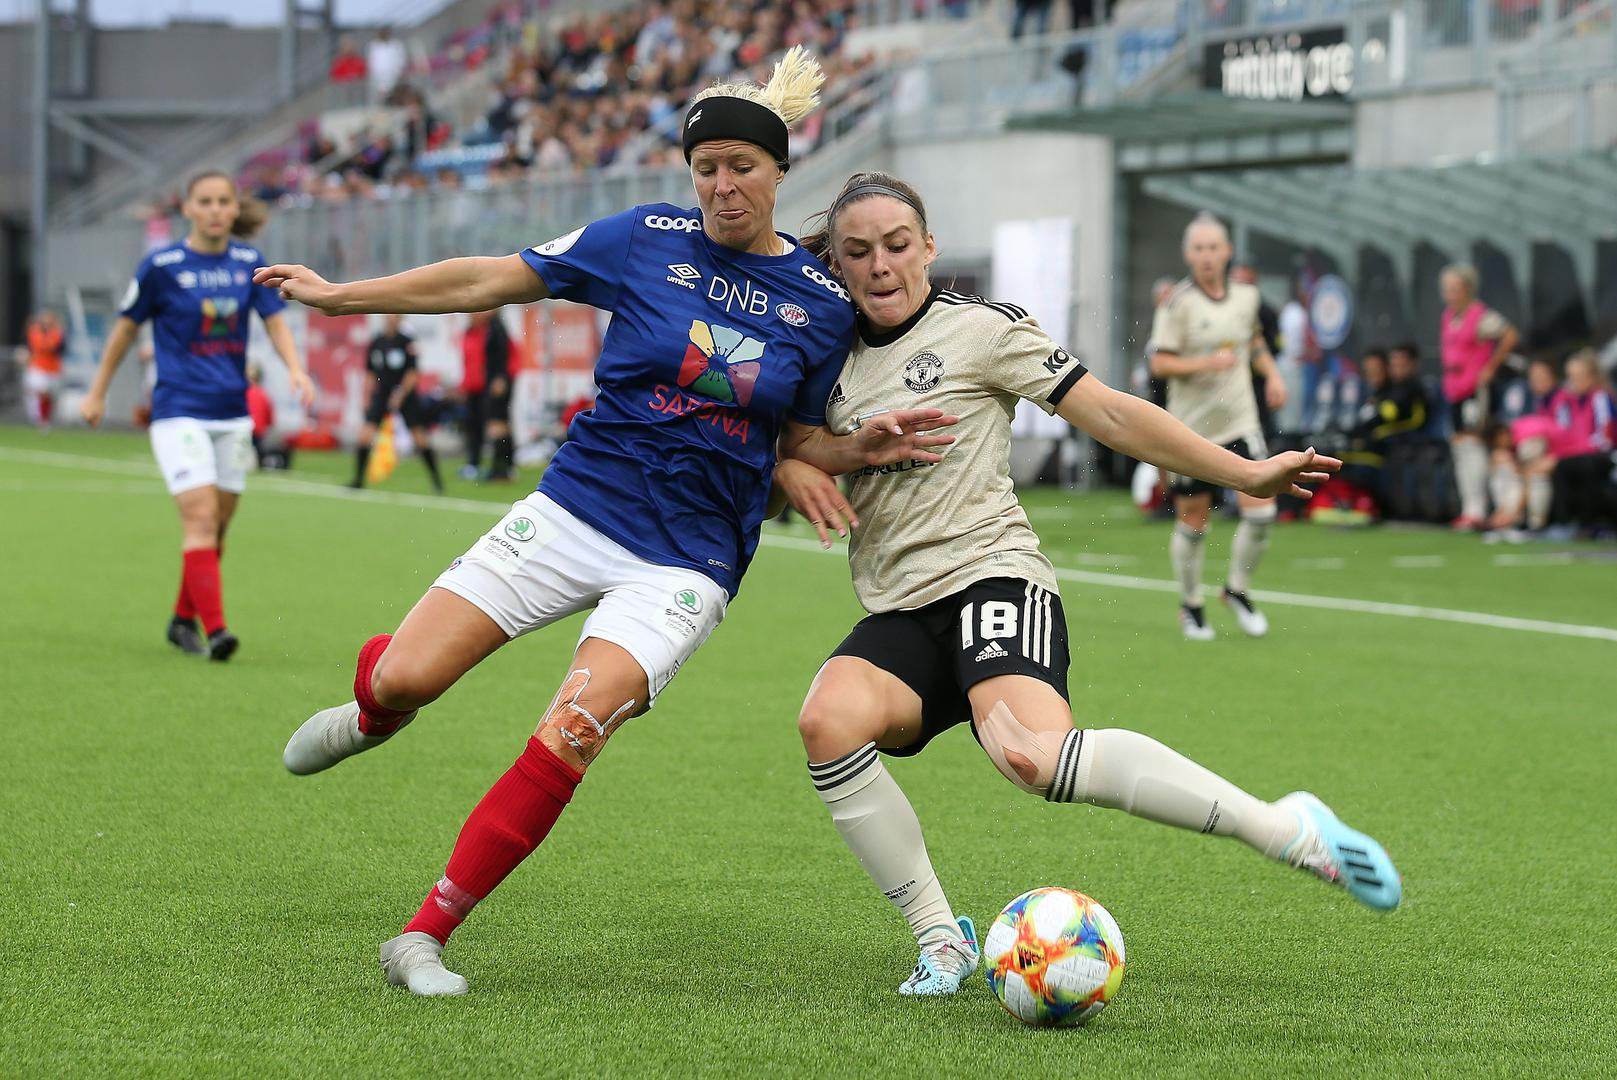 Action from the friendly in Norway against Valerenga for United Women.